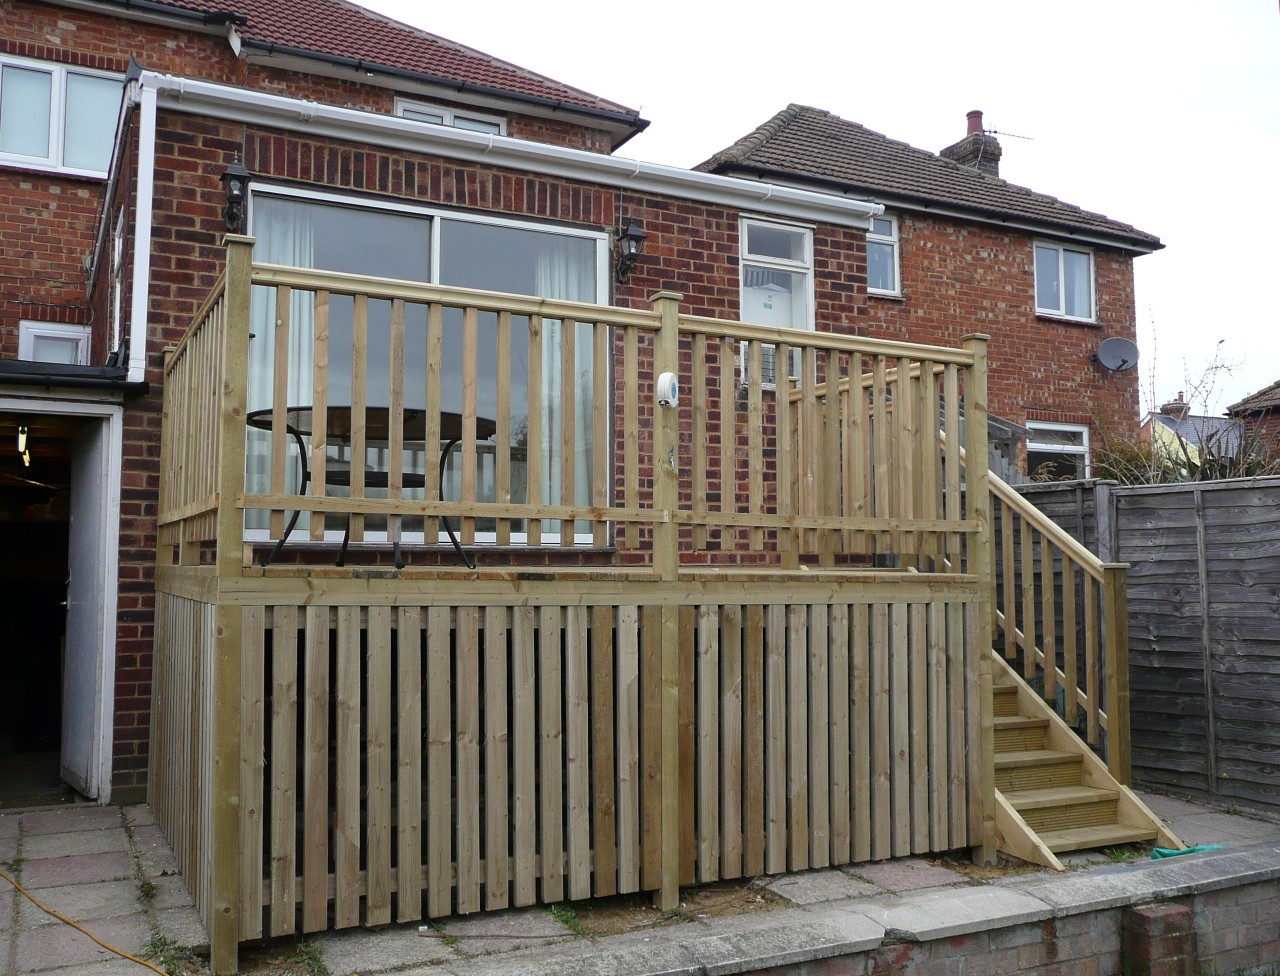 Epsom decking over a raised eyesore ashwell landscapes - How To Build A Raised Deck Help Ideas Diy At Bq